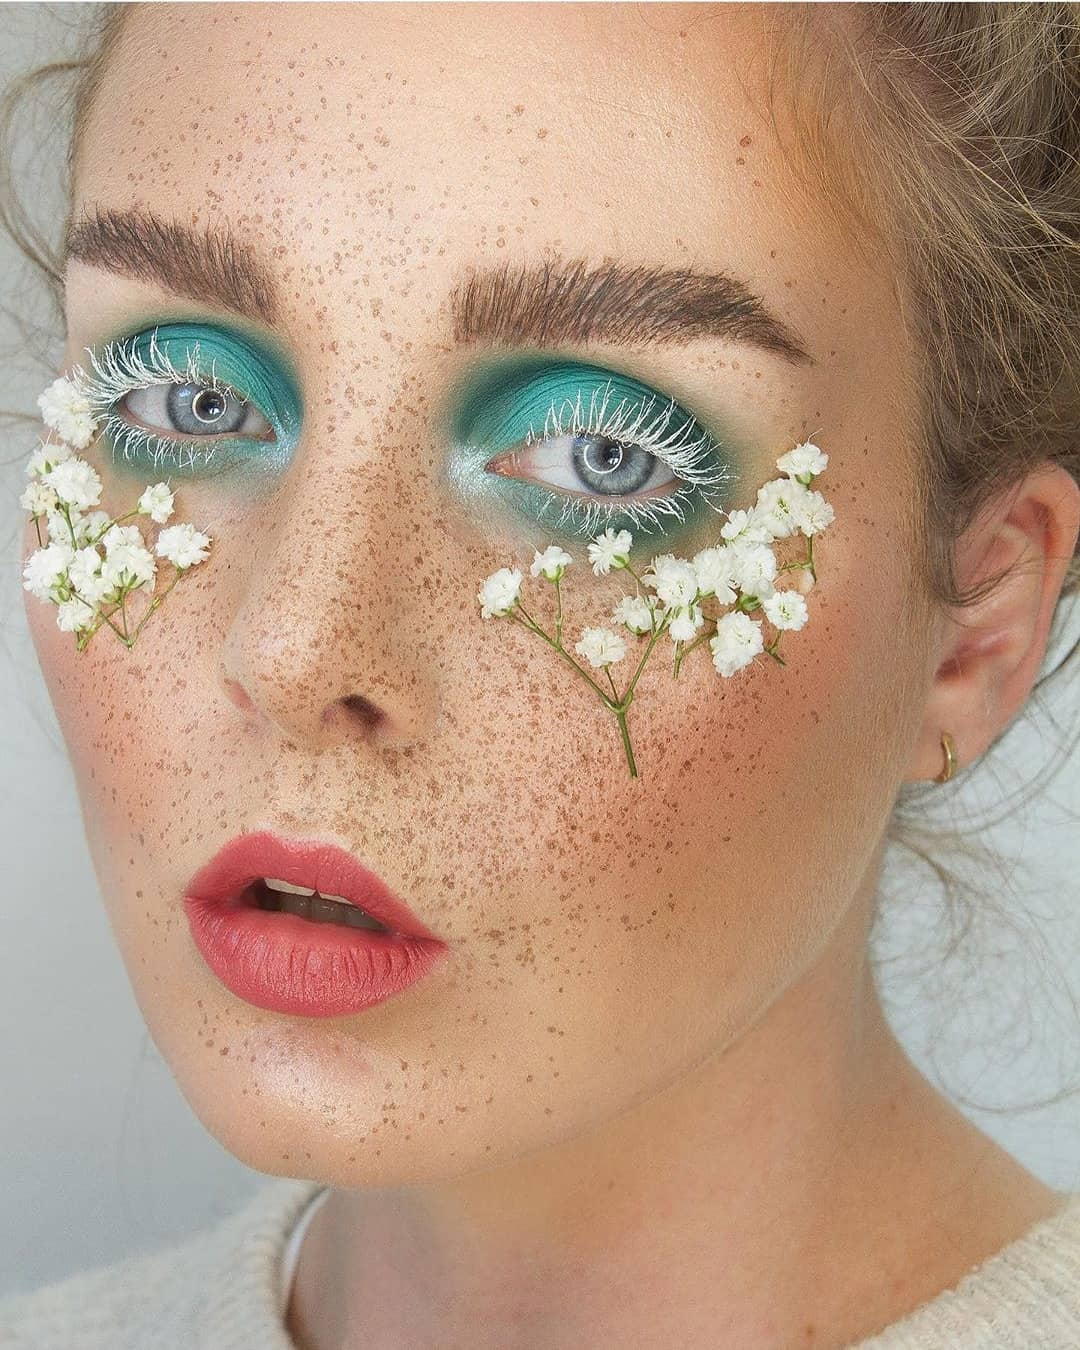 Teal eyeshadow, white lashes with Faux Freckles Makeup technique